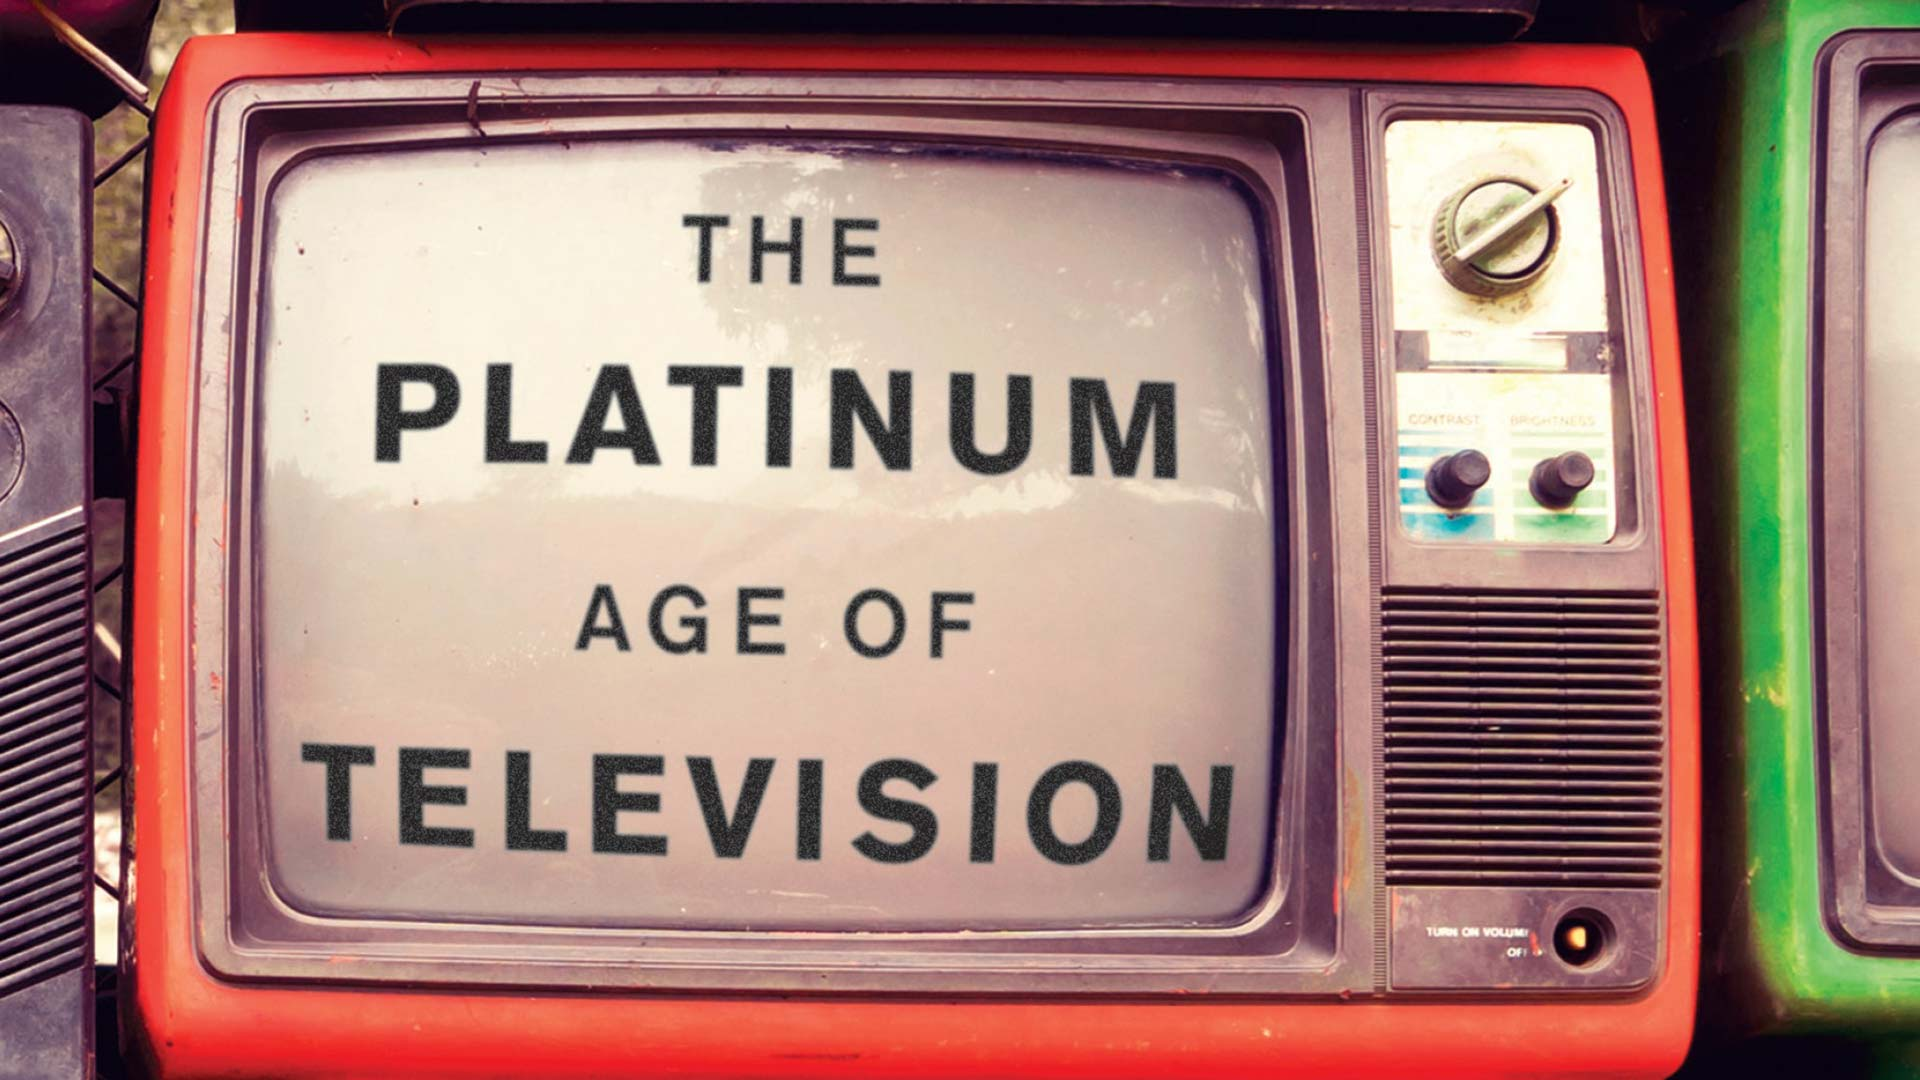 Image from the cover of The Platinum Age of Television, by David Bianculli.